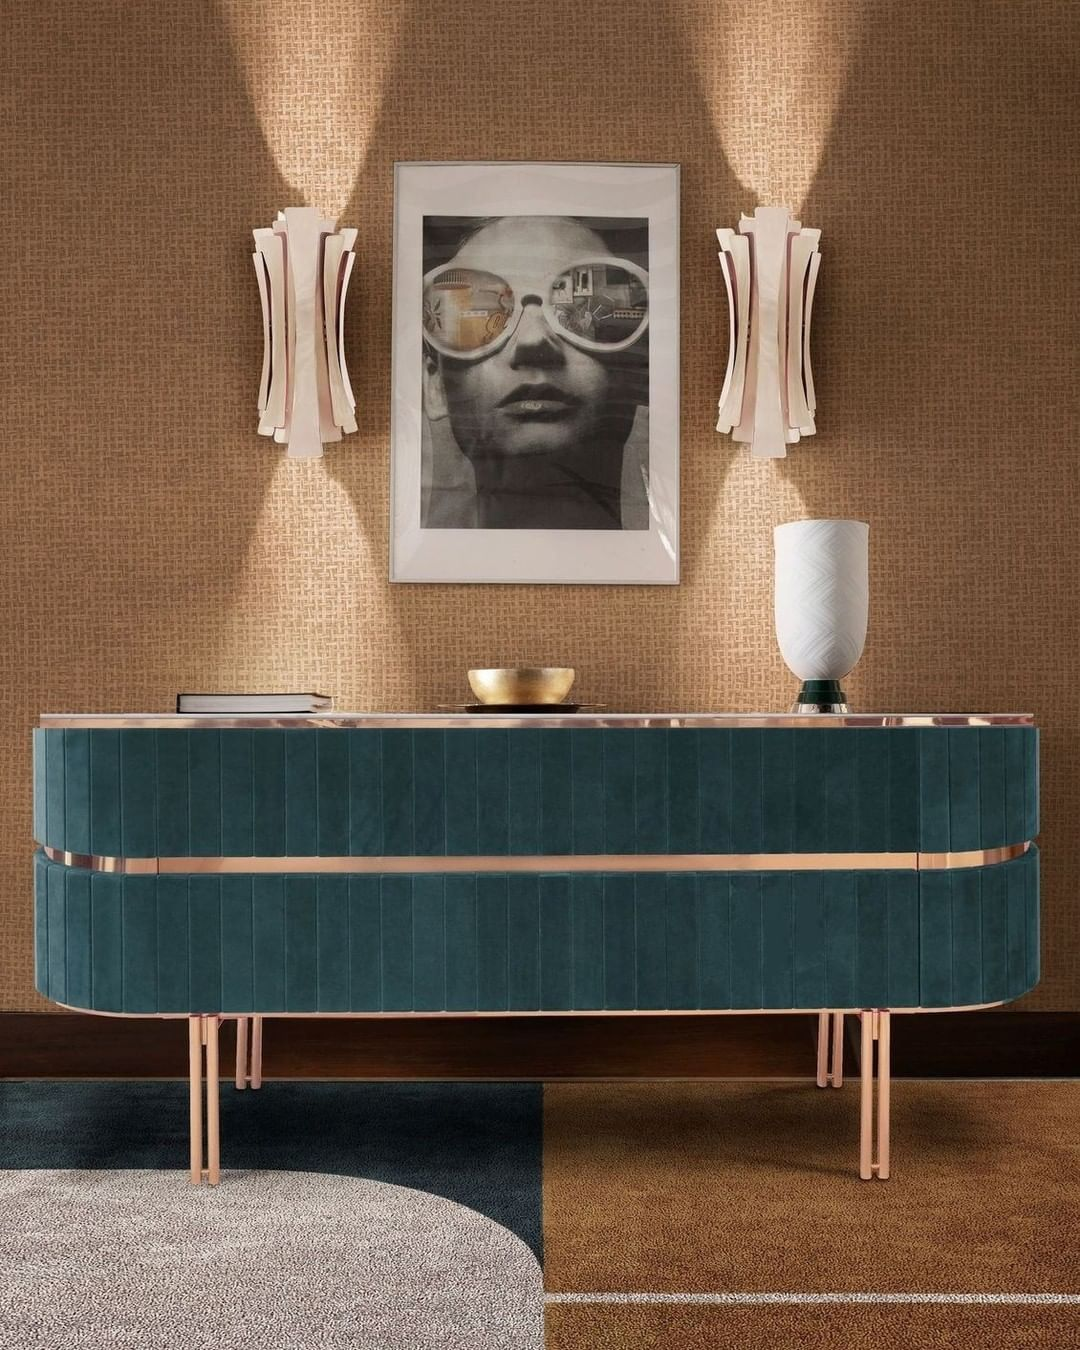 THE ACCENT PIECE YOU SHOULD PICK TO ELEVATE YOUR DESIGN